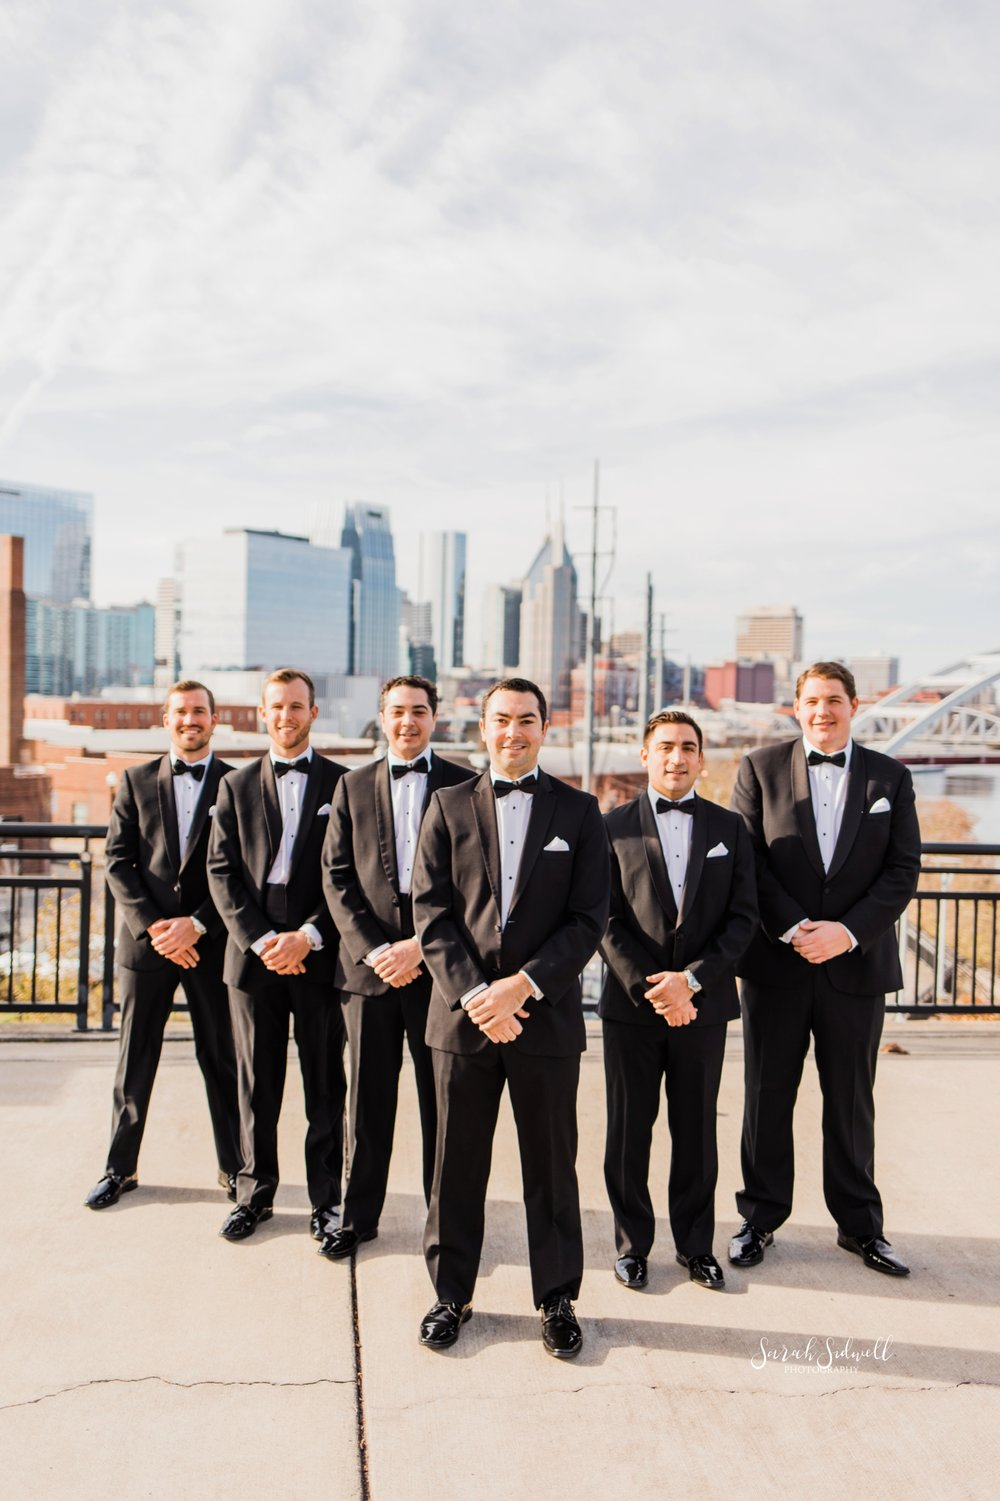 Groomsmen stand together | Sarah Sidwell Photography | The Bell Tower